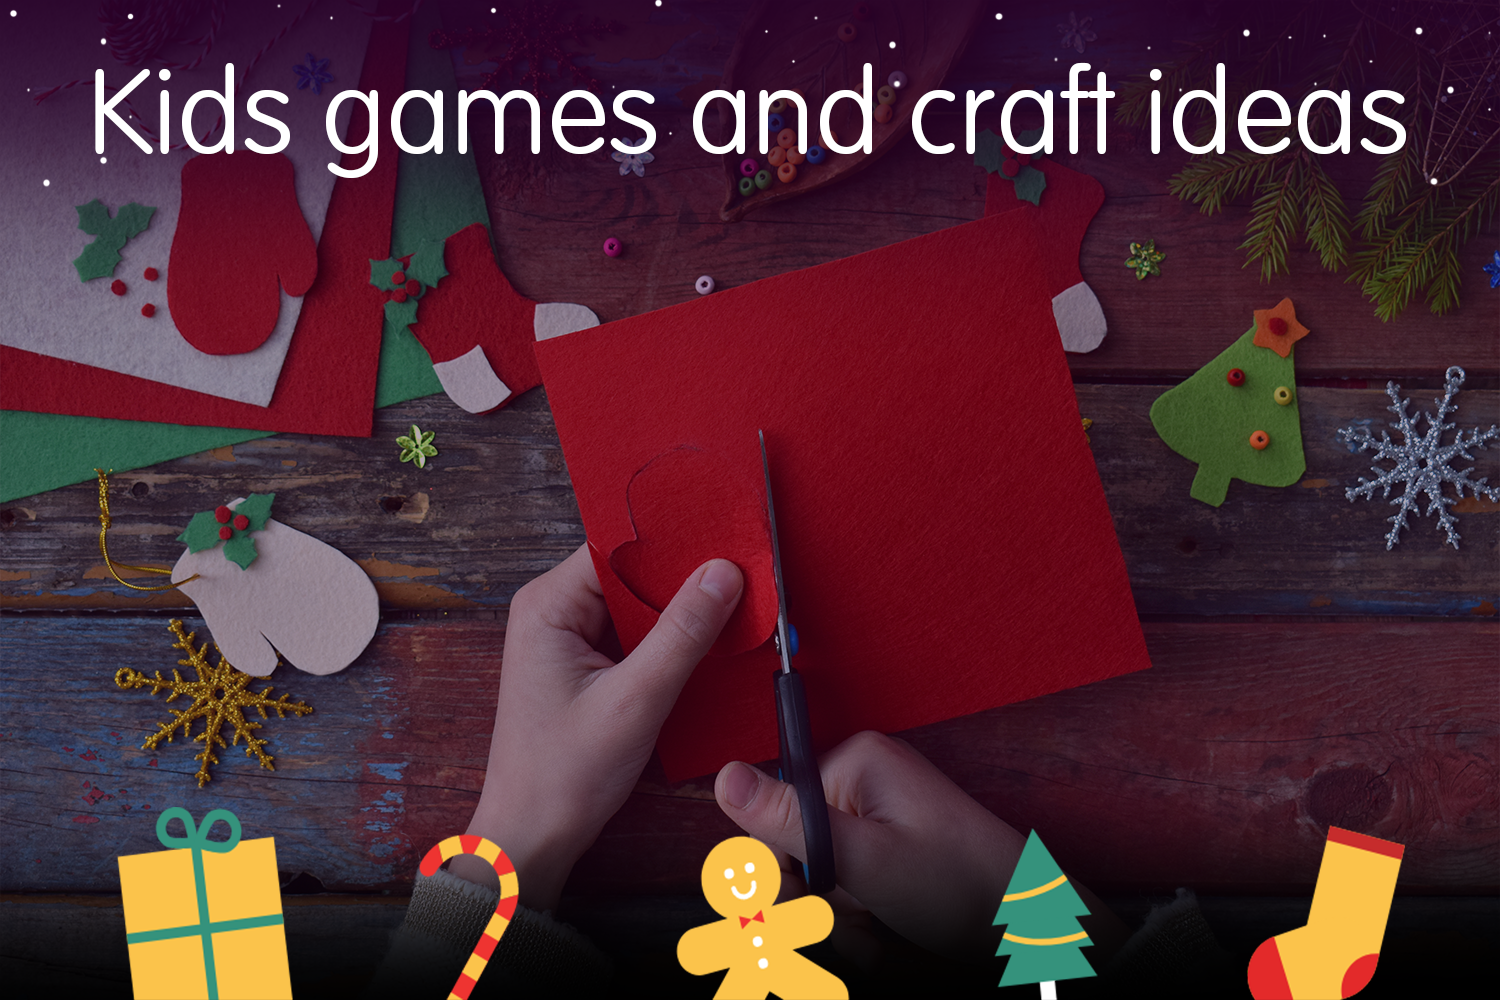 Top Christmas offers for kids games and crafts>